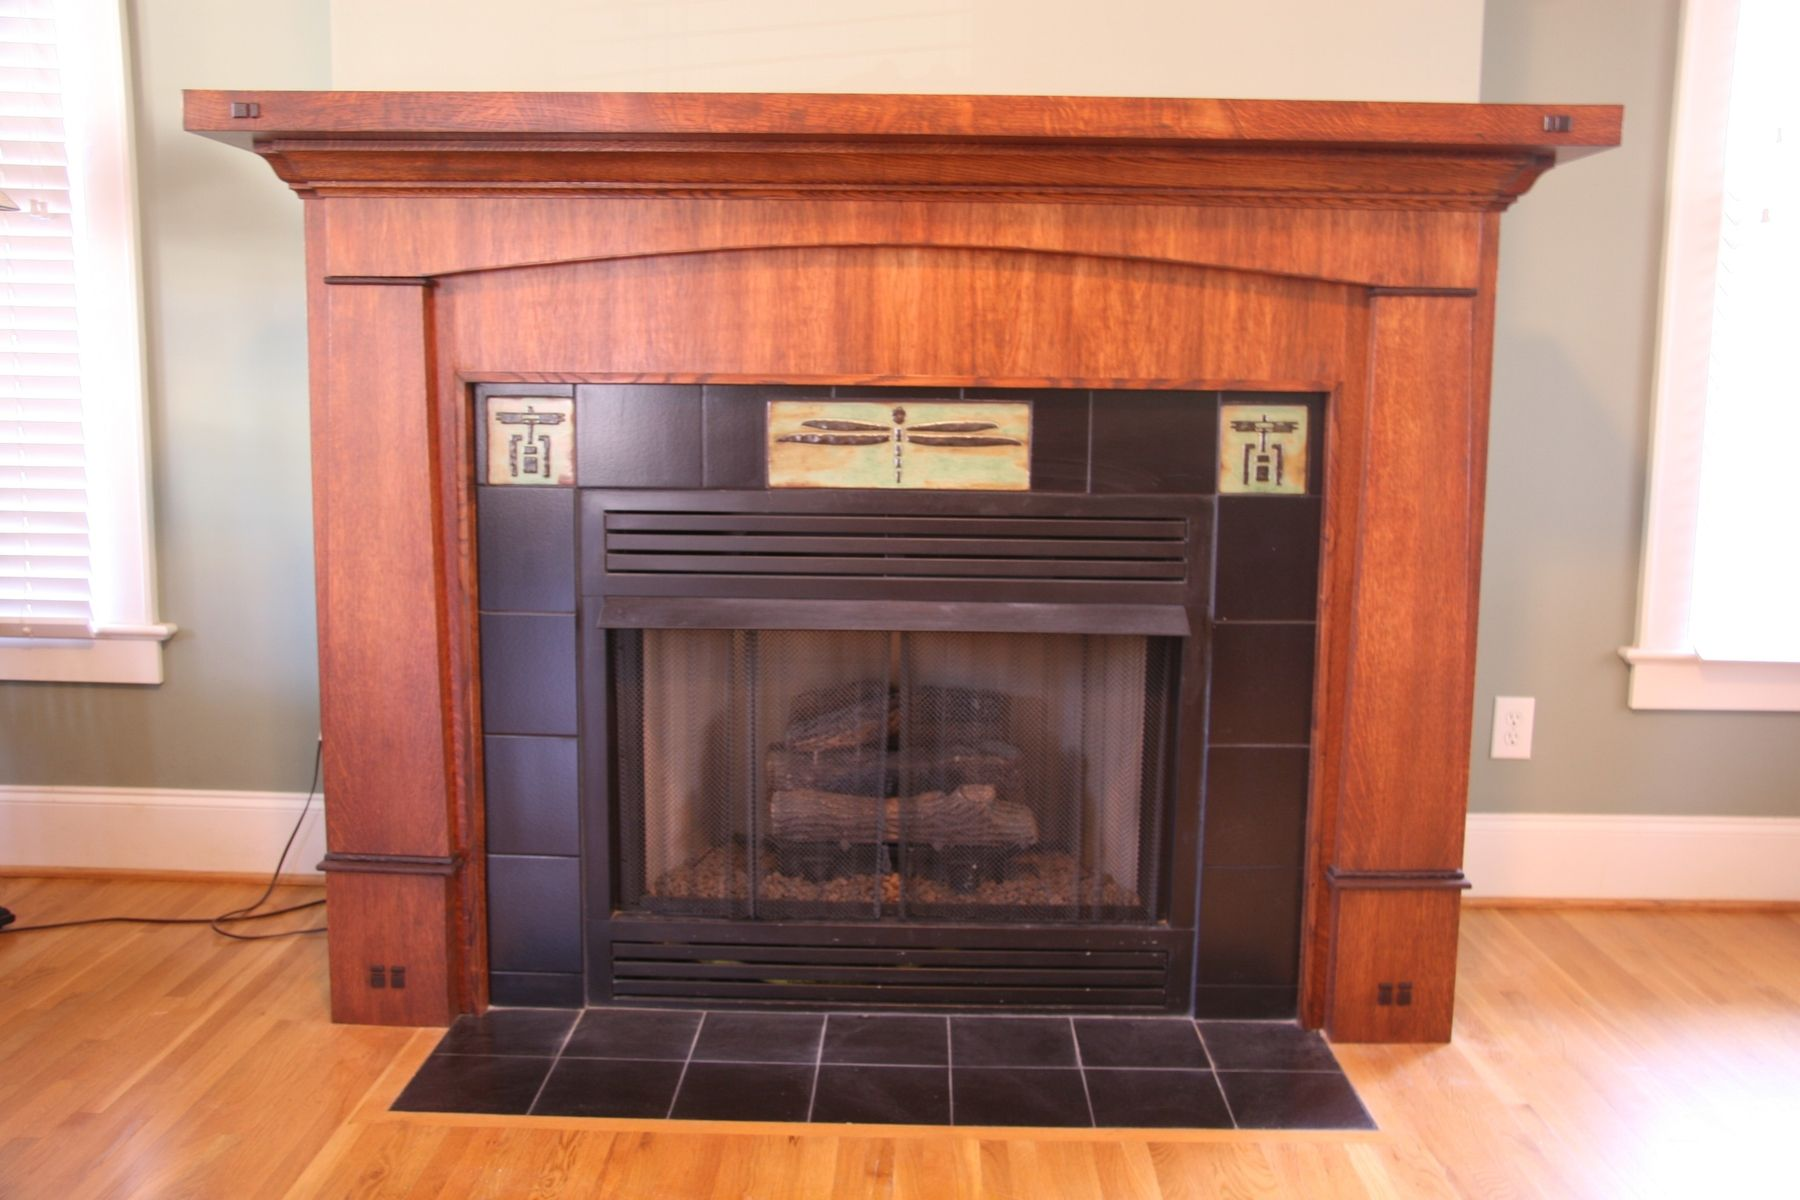 Hand made custom craftsman style fireplace mantle and surround by jro furnituremaker - Fireplace mantel designs in simple and sophisticated style ...